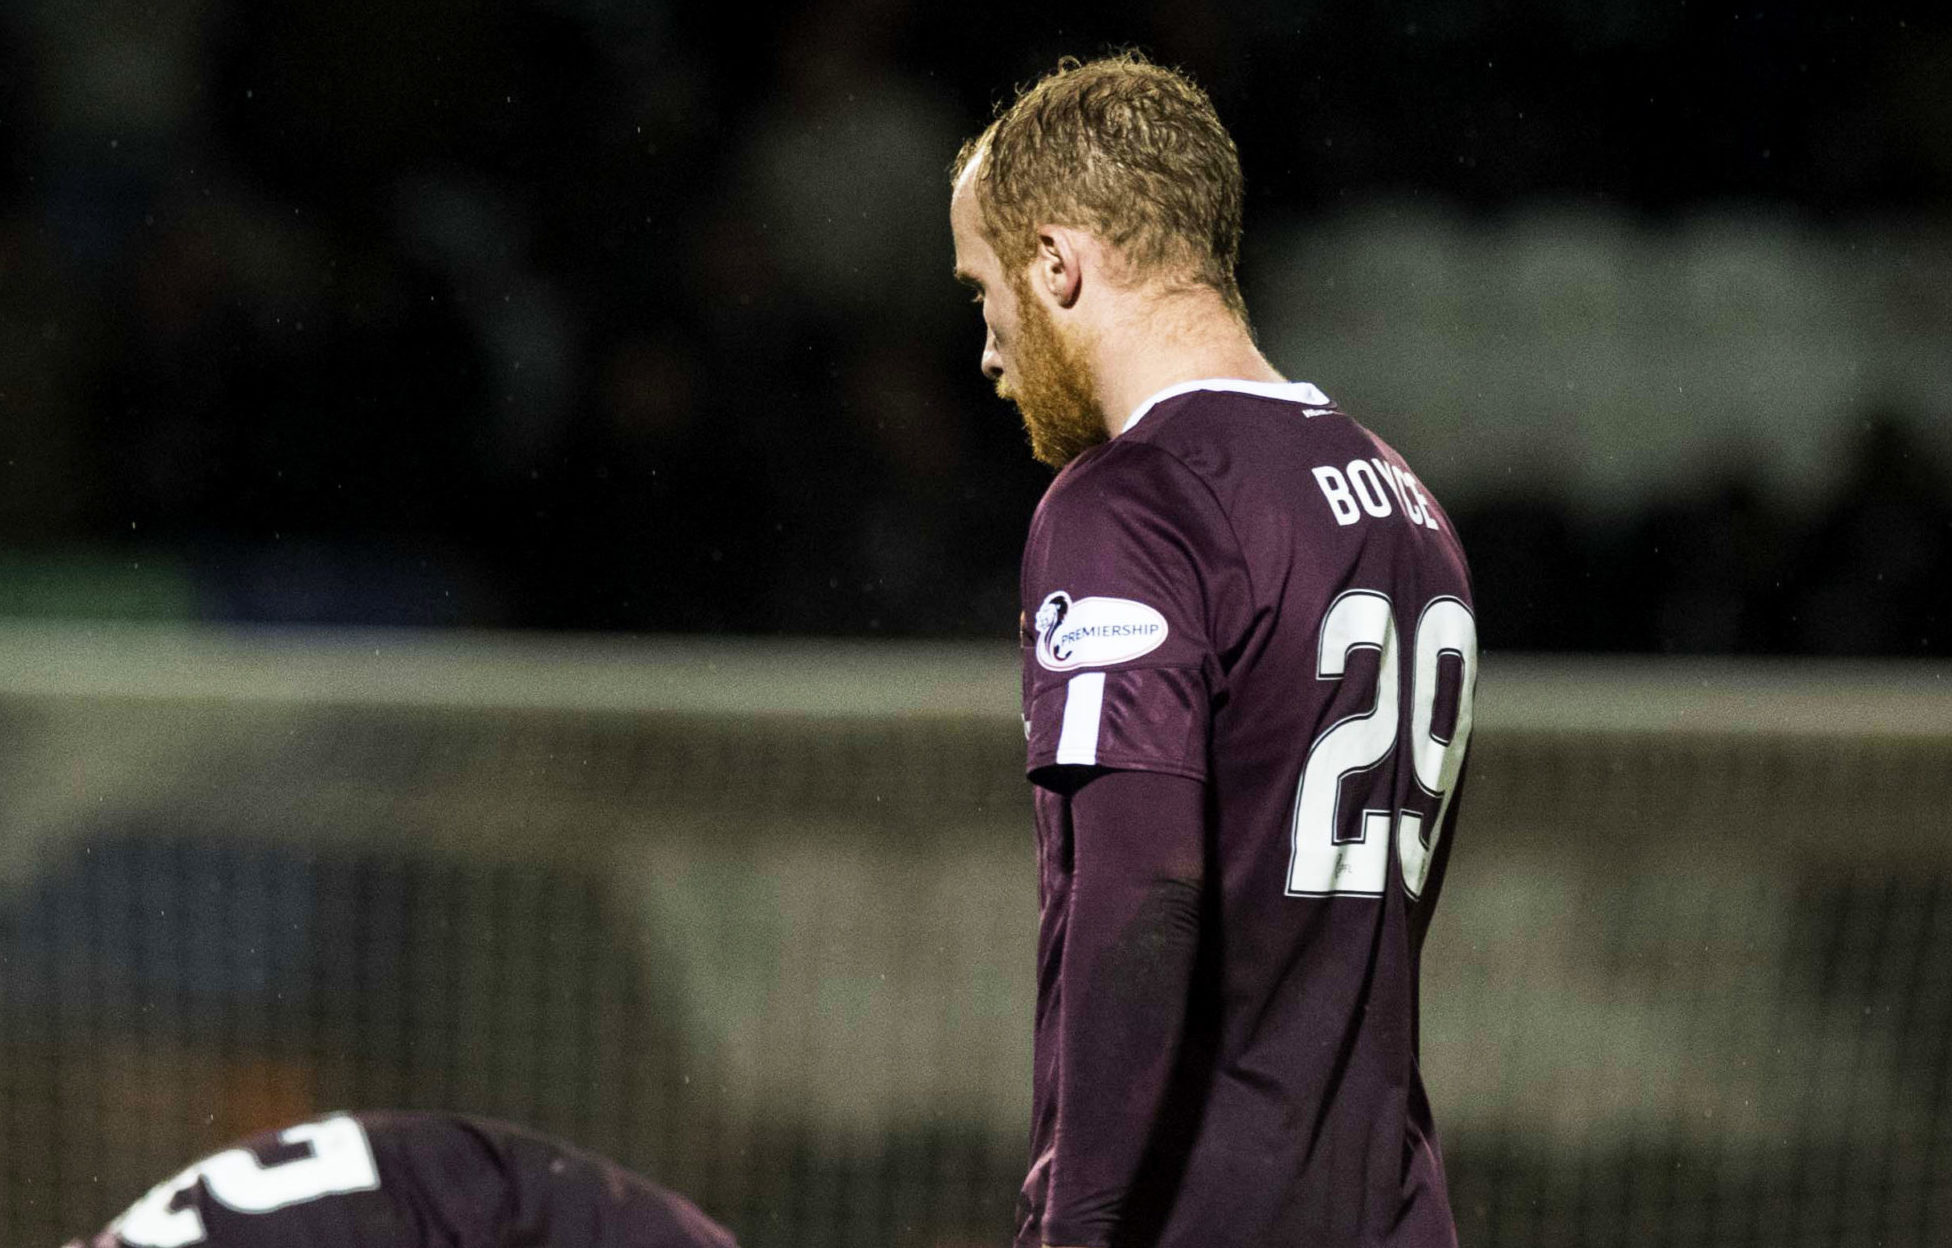 Hearts' Liam Boyce troops off after losing 1-0 to St Mirren in Paisley on March 11. The result that ultimately looks like sending the Jambos down